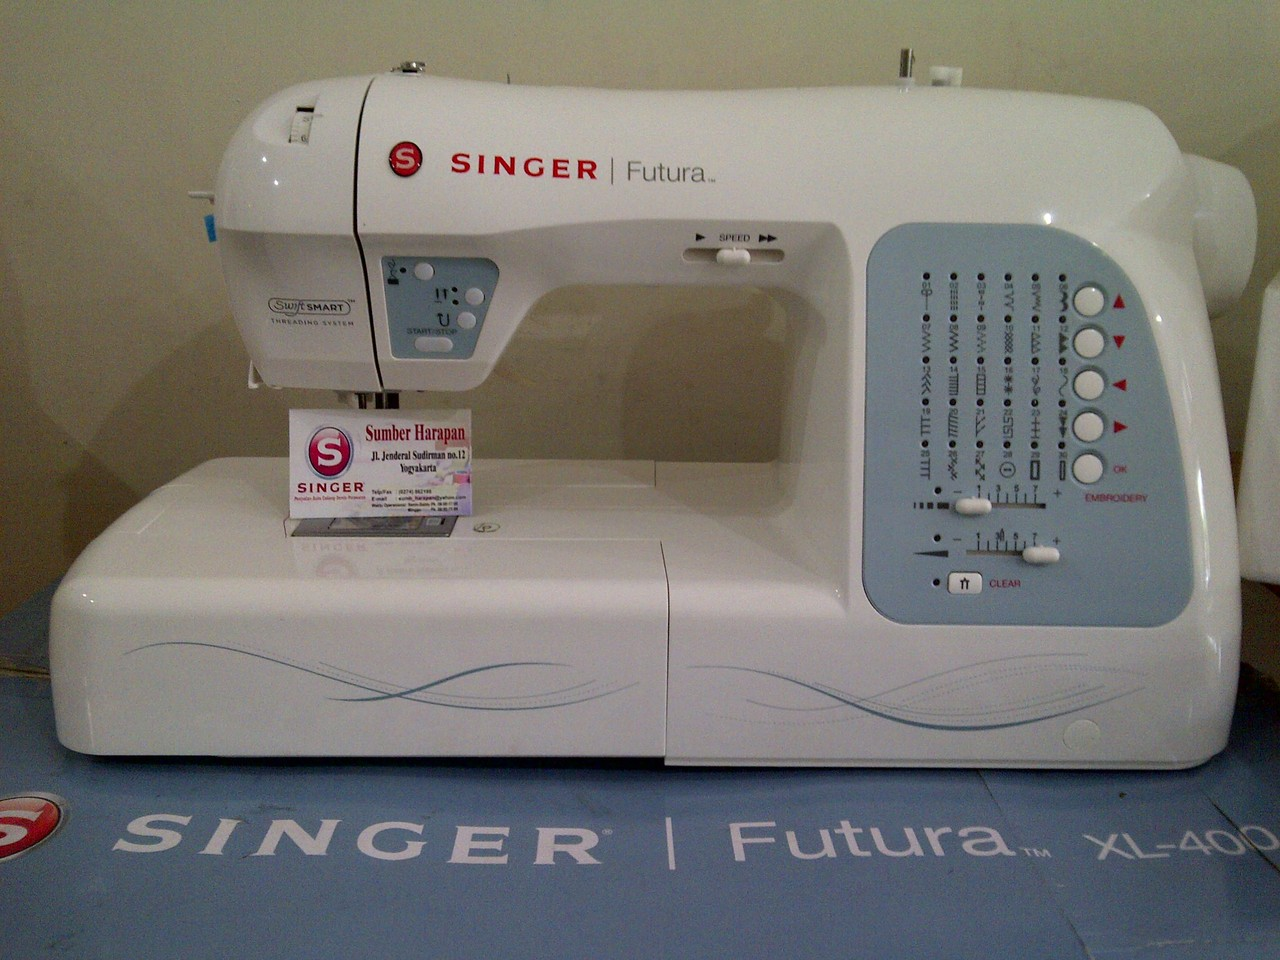 My new business embroidery and sewing